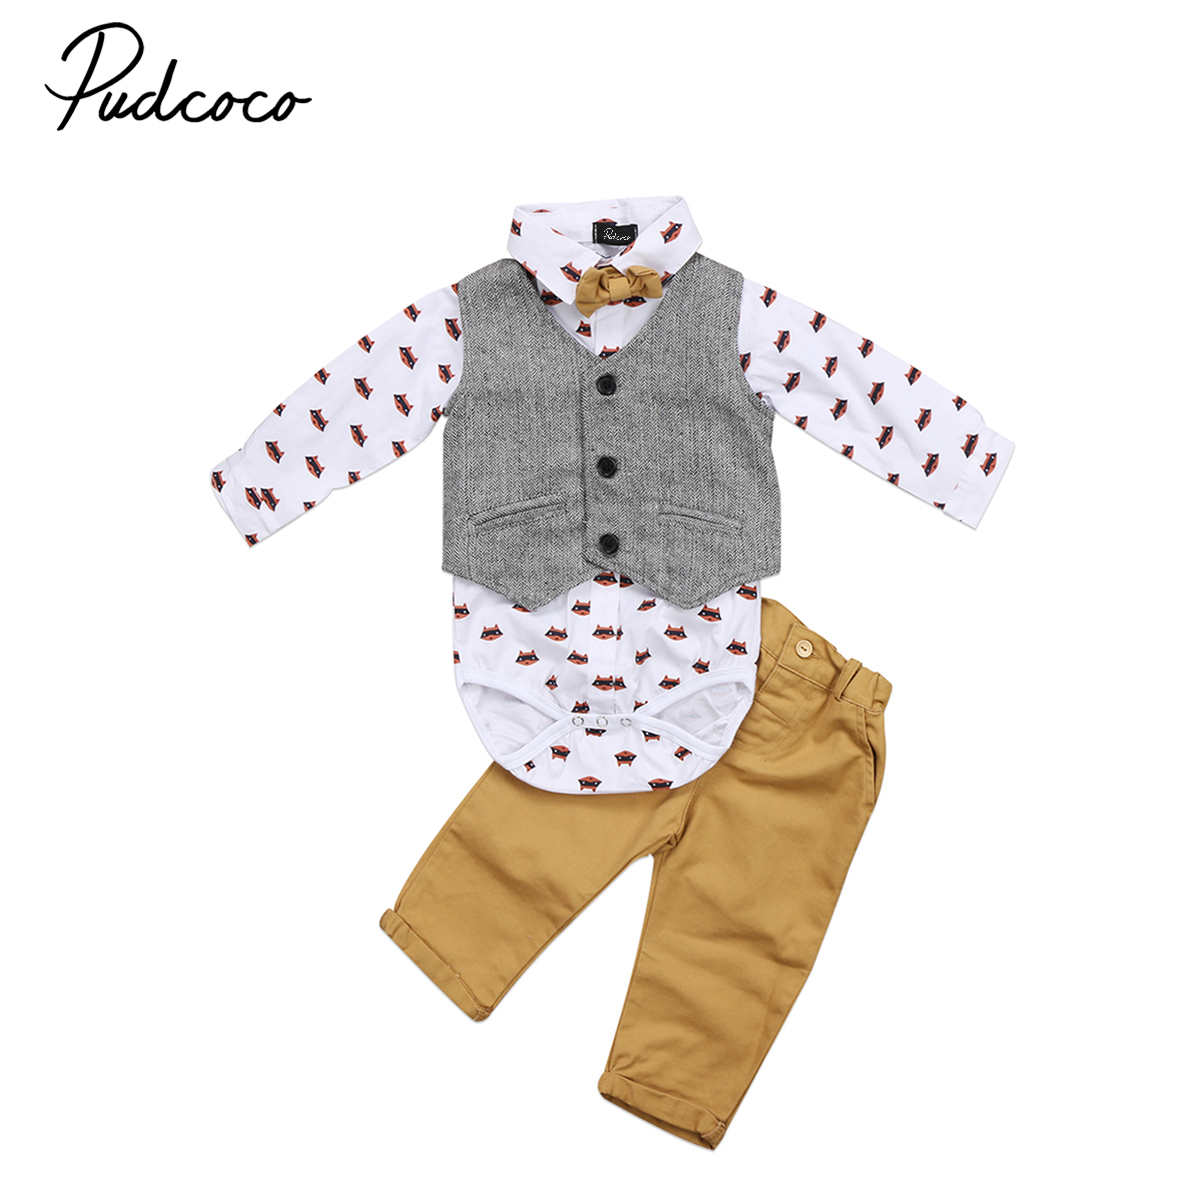 Pudcoco Newborn Toddler Baby Boys Formal Suit Waistcoat T-shirts Pants 3pcs Set Fashion Gentleman Outfits